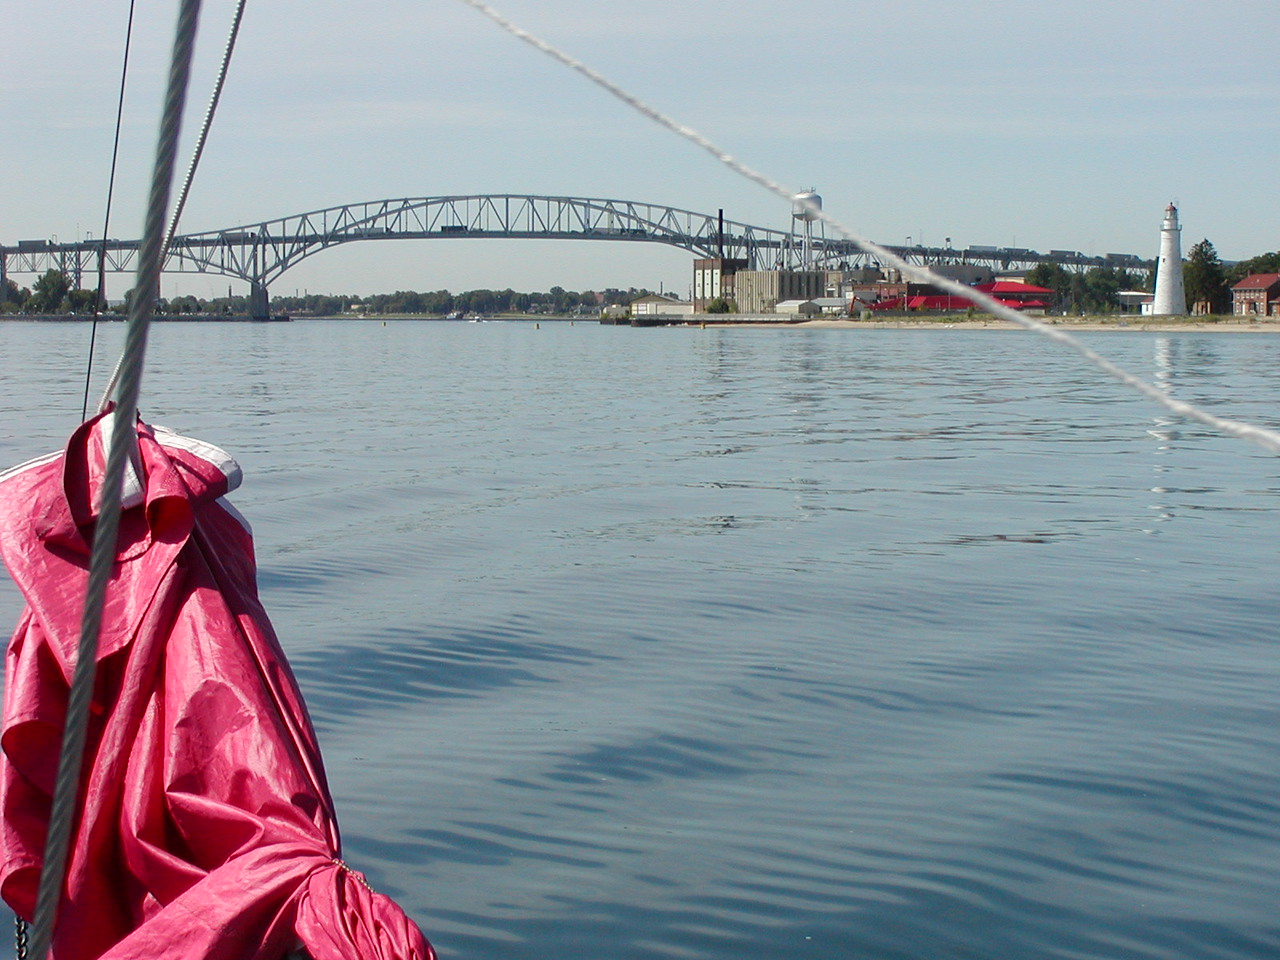 This bridge at the mouth of the St. Clair River connects Port Huron, USA with Sarnia, Canada. The lack of wind makes this a motoring day. We need to be going a few knots faster than the current in order to control steering. The river current seems to range from 3-4 knots.